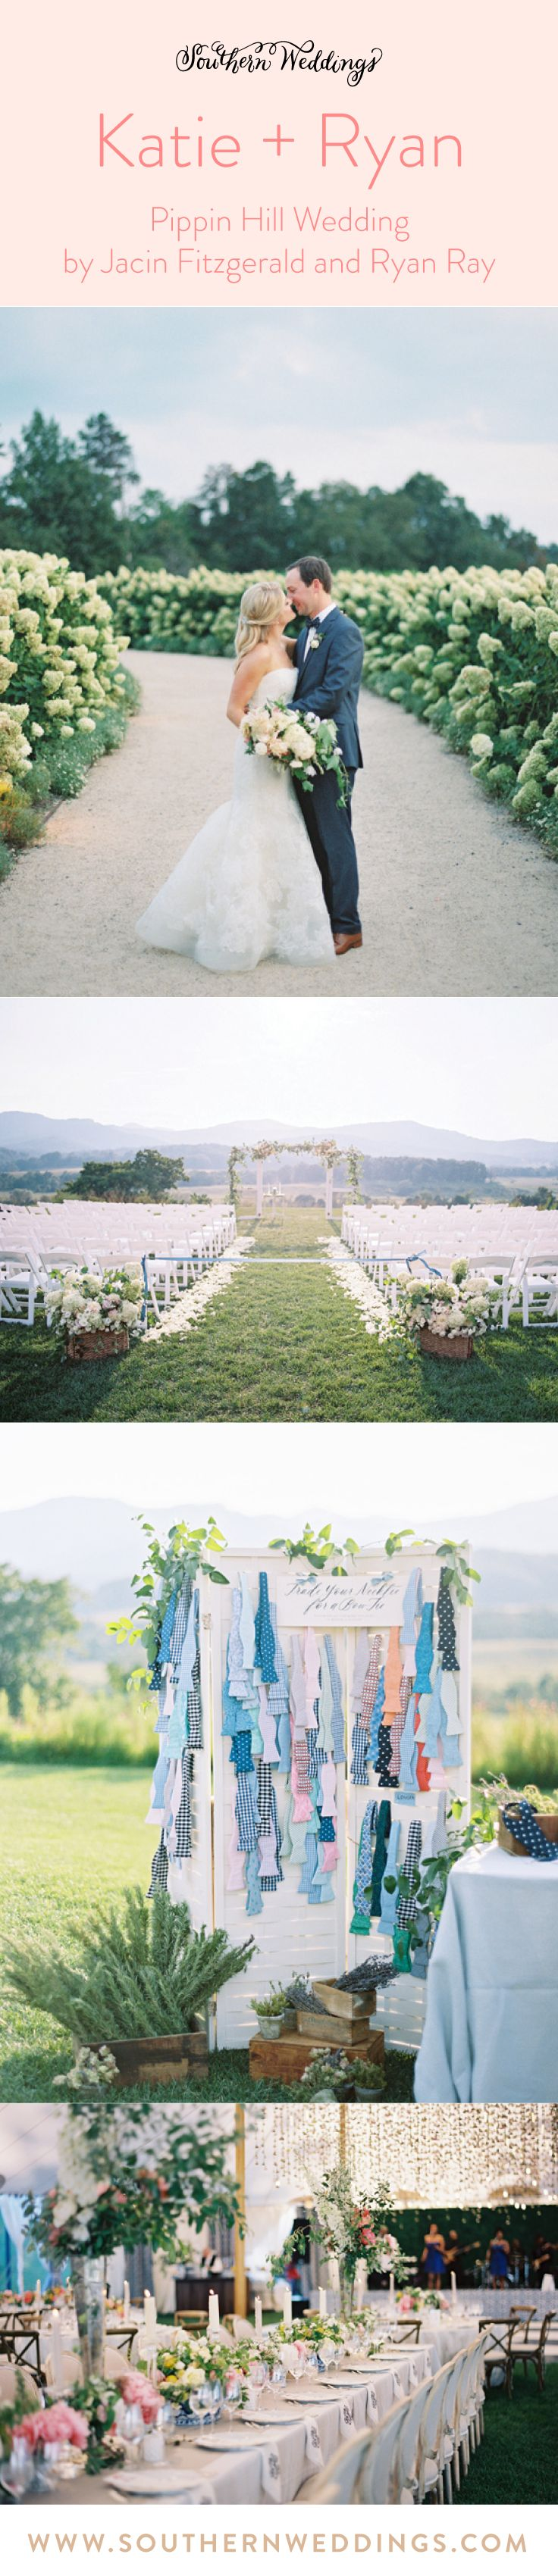 Bride, Katie, shares all about her dreamy Pippin Hill wedding on the blog!